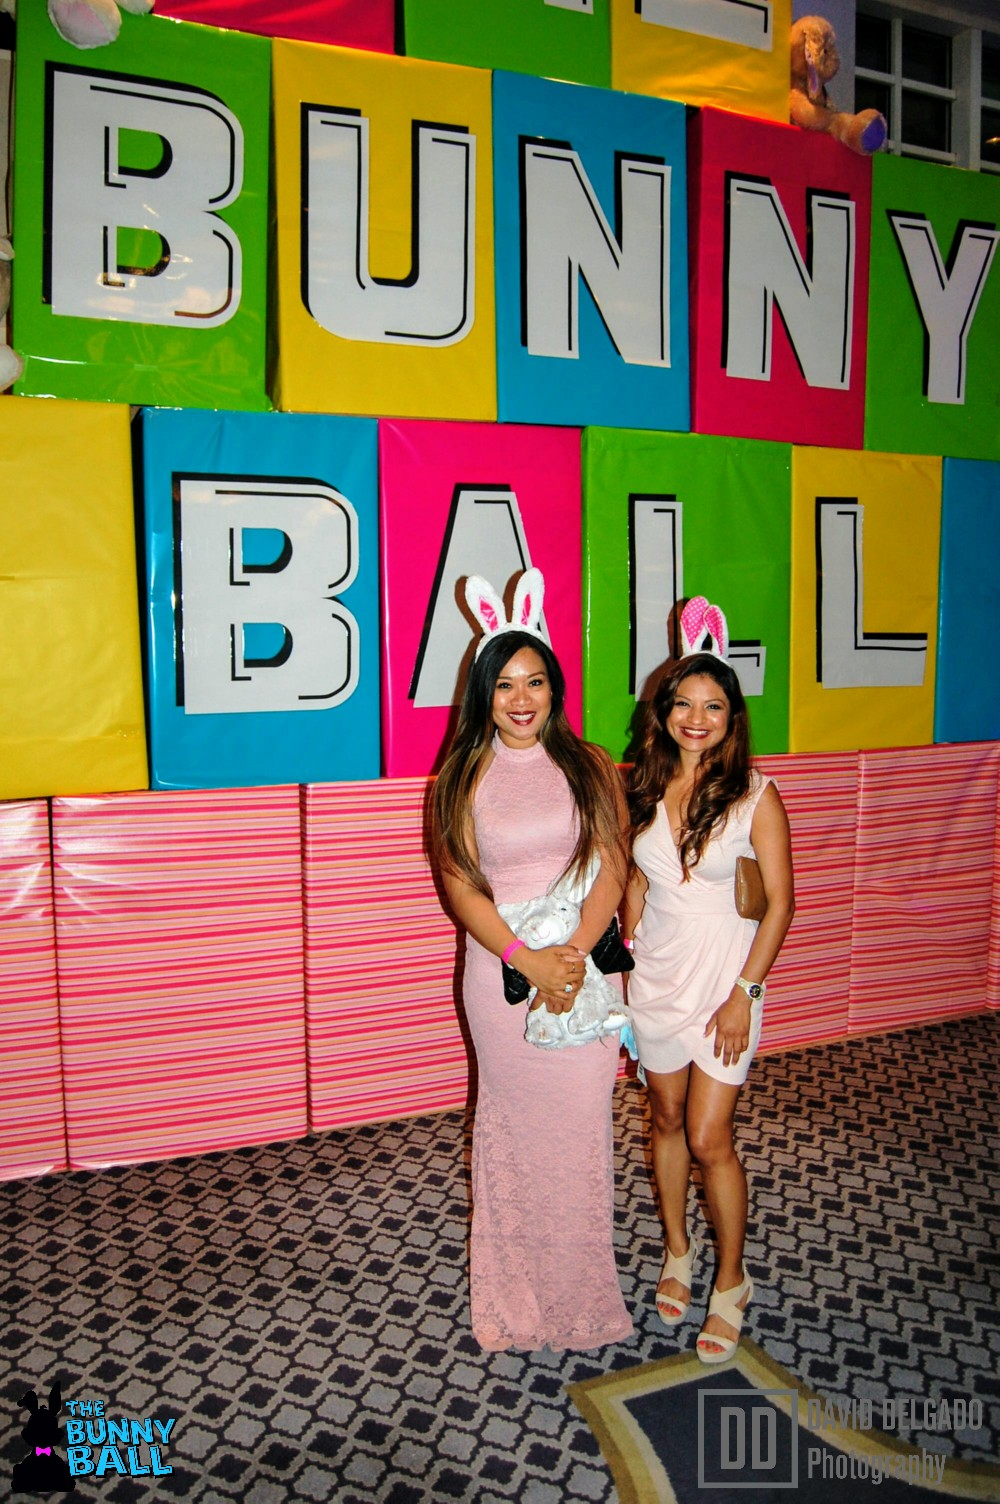 David Delgado Photography Bunny Ball 2017 - 31.jpg